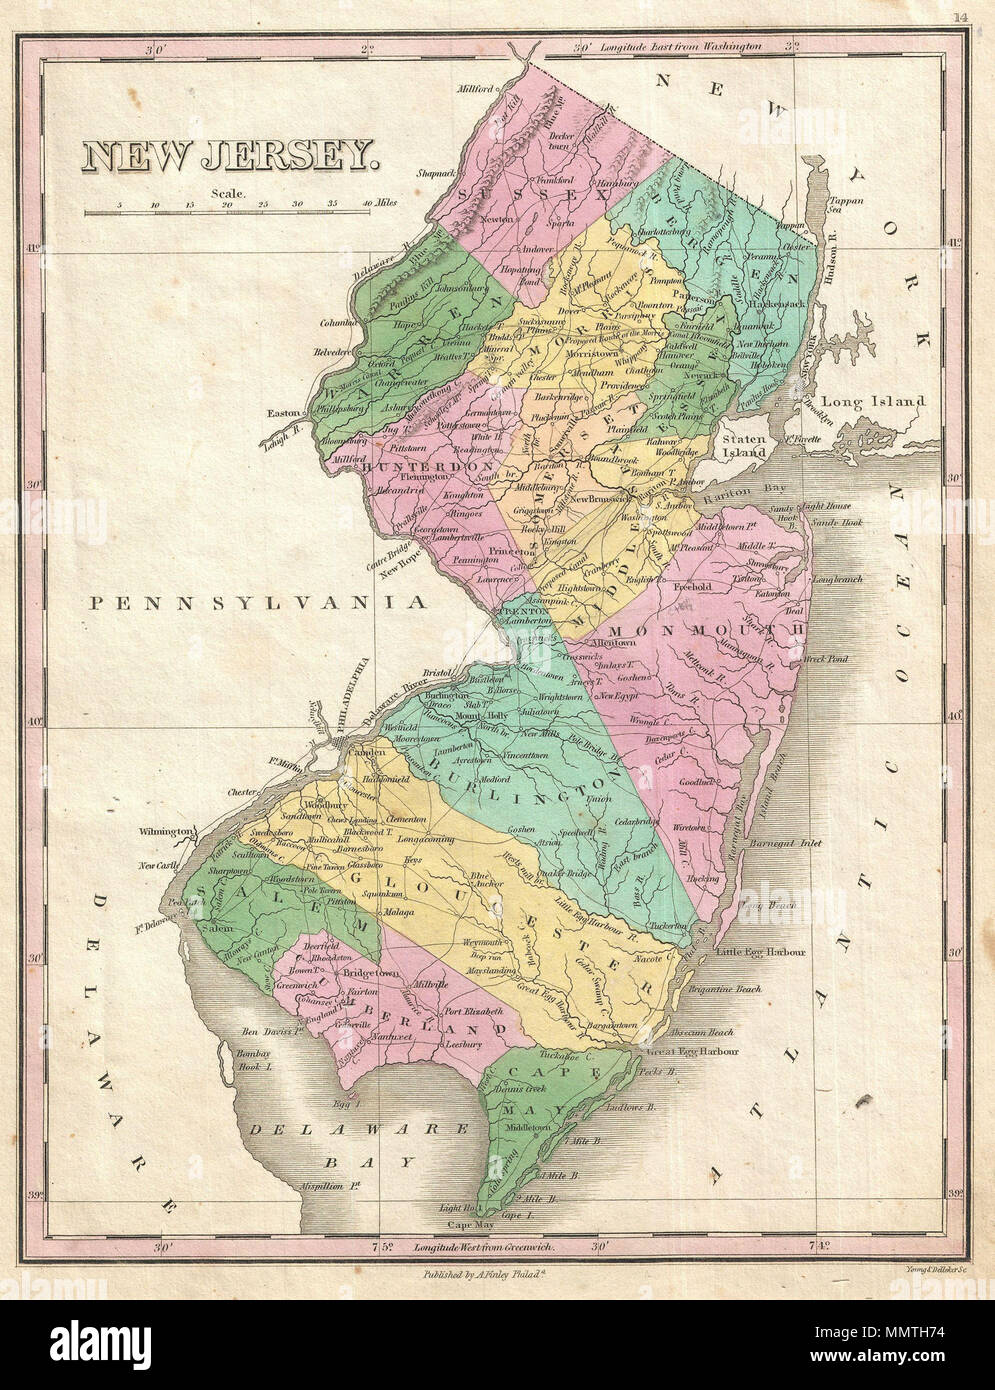 .  English: A beautiful example of Finley's important 1827 map of New Jersey. Depicts the state with moderate detail in Finley's classic minimalist style. Shows river ways, roads, canals, and some topographical features. Offers color coding at the county level. Title and scale in upper left quadrant. Engraved by Young and Delleker for the 1827 edition of Anthony Finley's General Atlas .  New Jersey.. 1827 (undated). 1827 Finley Map of New Jersey - Geographicus - NewJersey-finley-1827 - Stock Image